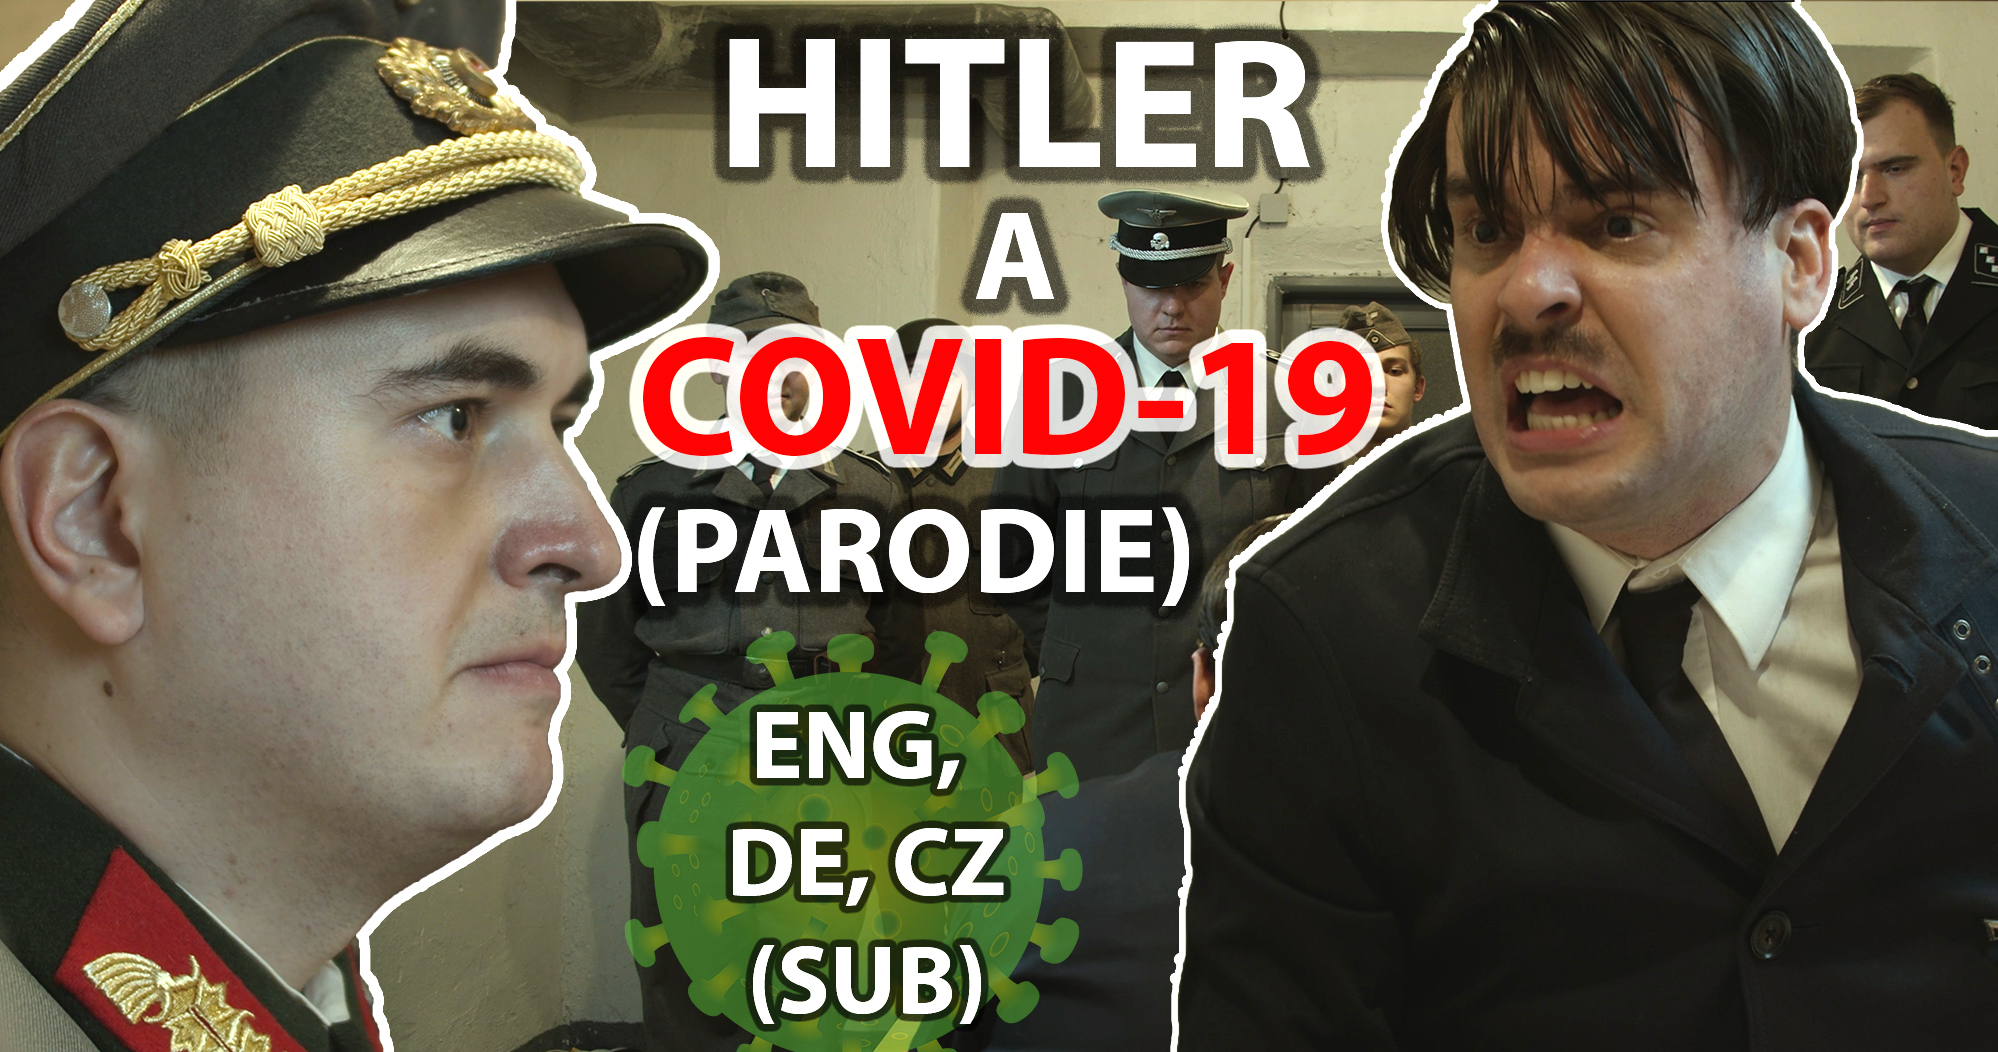 What would Hitler say about COVID? The famous parody scene was filmed